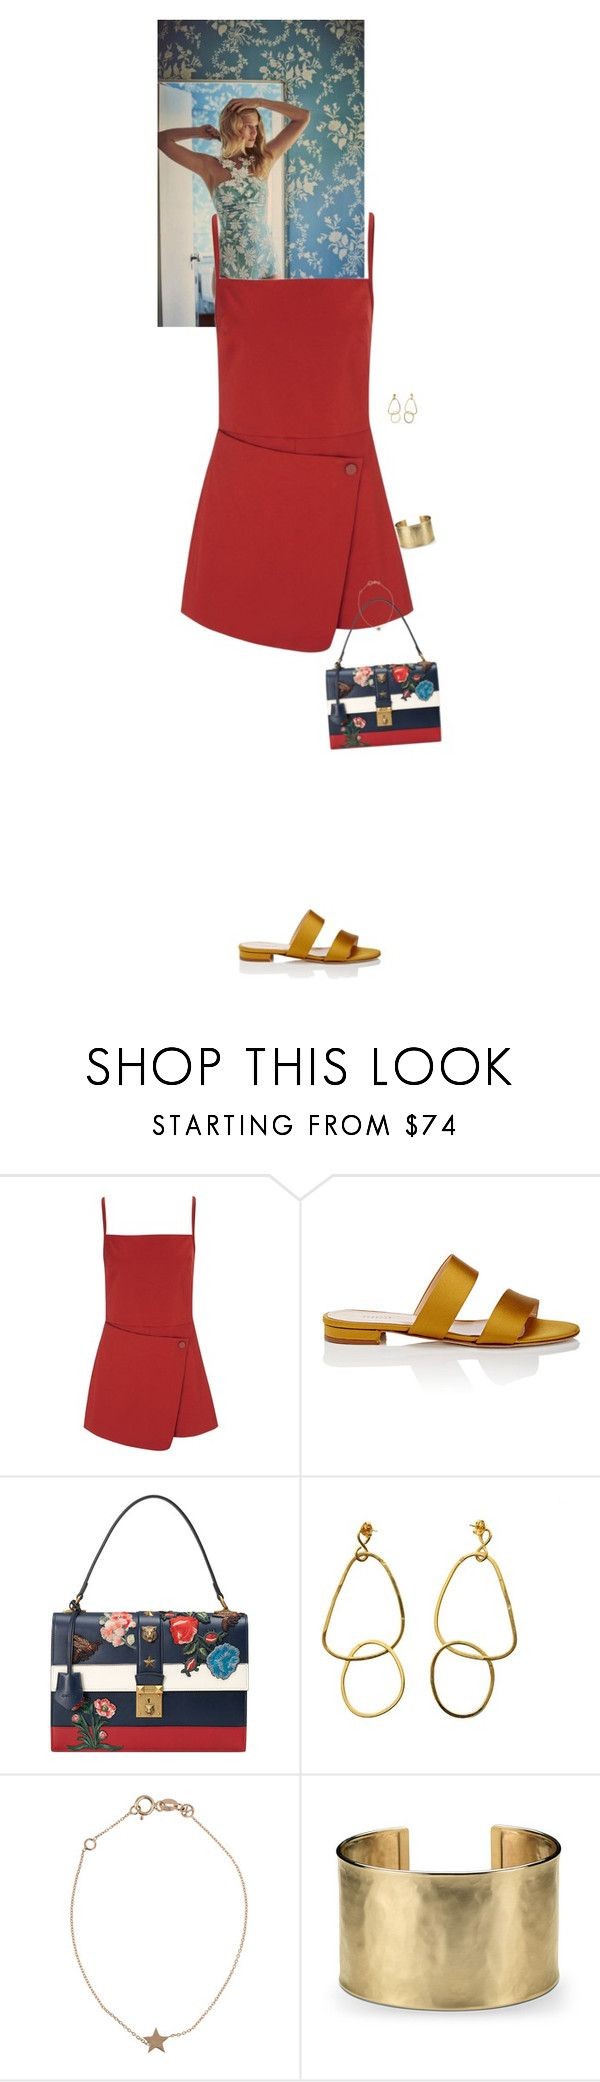 """Outfit of the Day"" by wizmurphy ❤ liked on Polyvore featuring Opening Ceremony, Barneys New York, Gucci, Kismet, Blue Nile, ootd and playsuit"